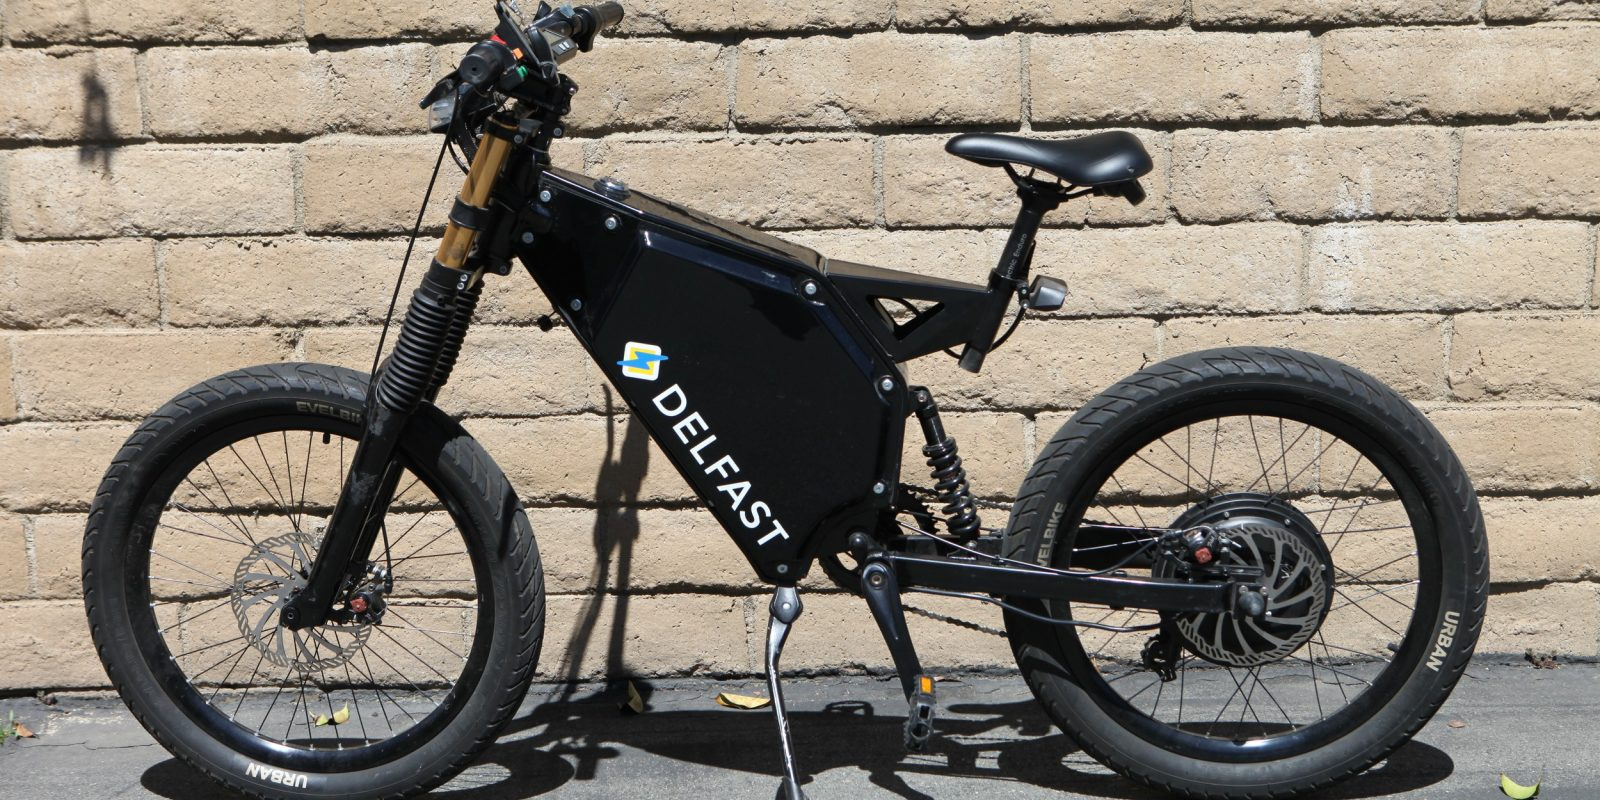 Delfast Maker Of 380 Km Range Electric Bicycle Has A New